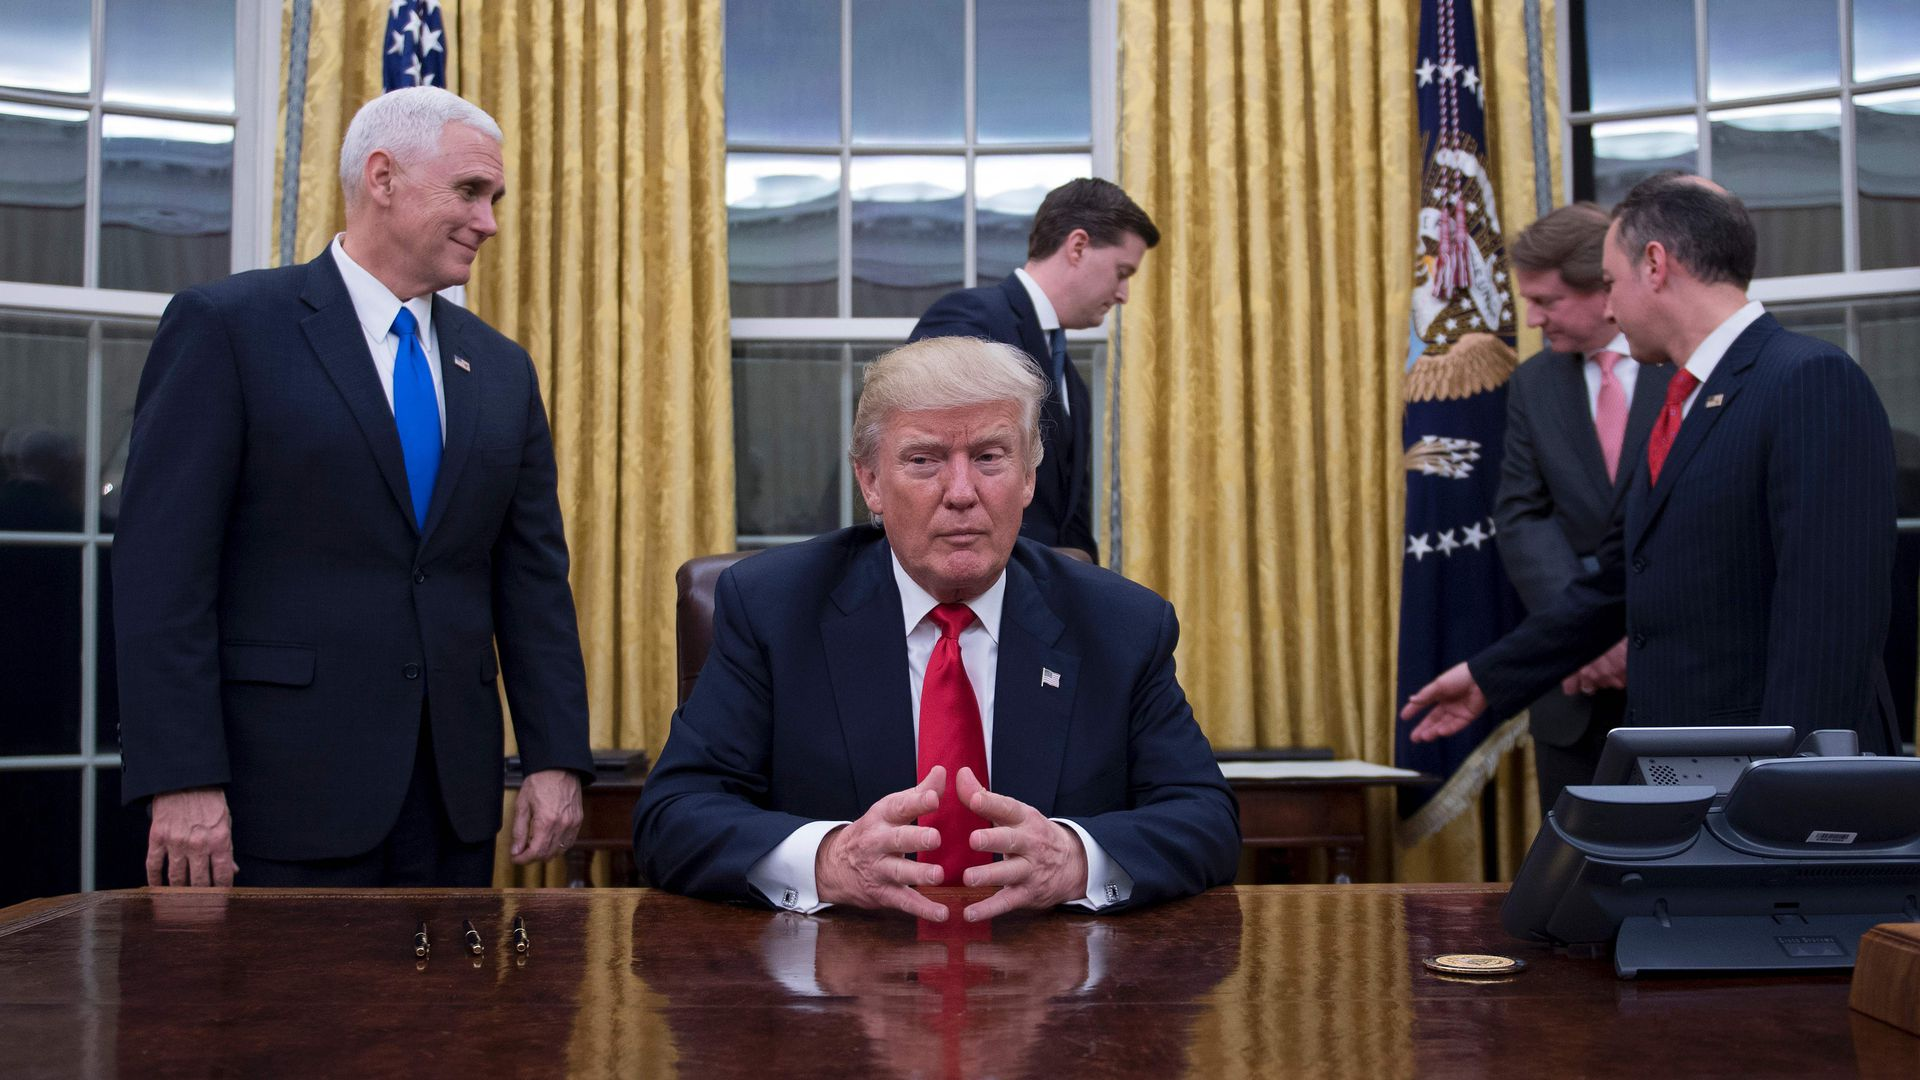 Donald Trump sits at his desk as his staff works around him